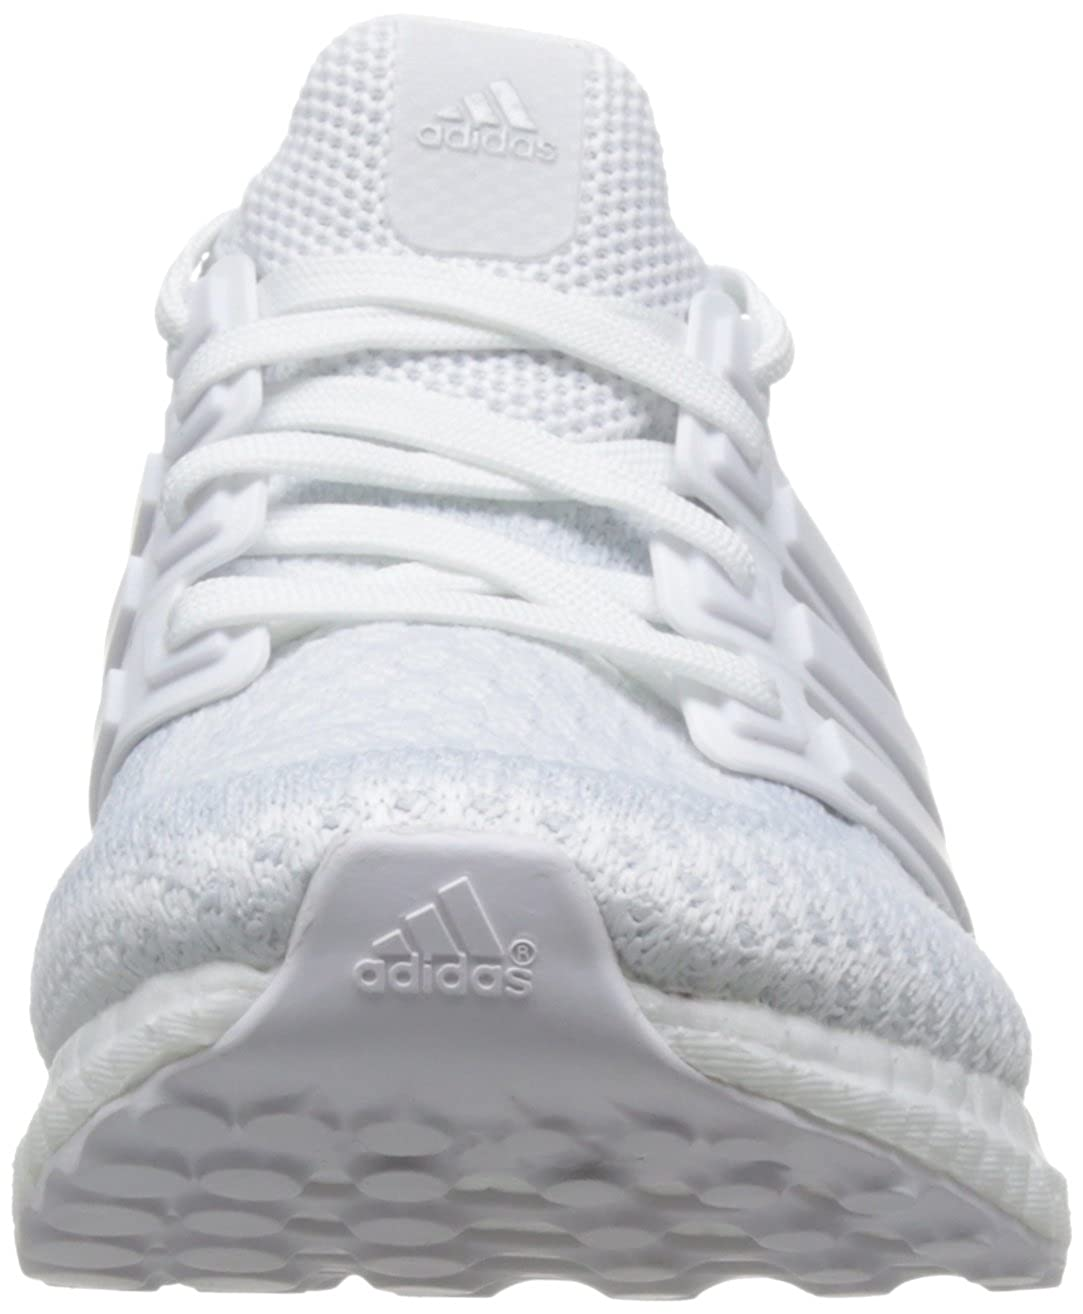 best website 2a549 830a0 adidas Women s Ultraboost W Running Shoes AQ5935 larger image